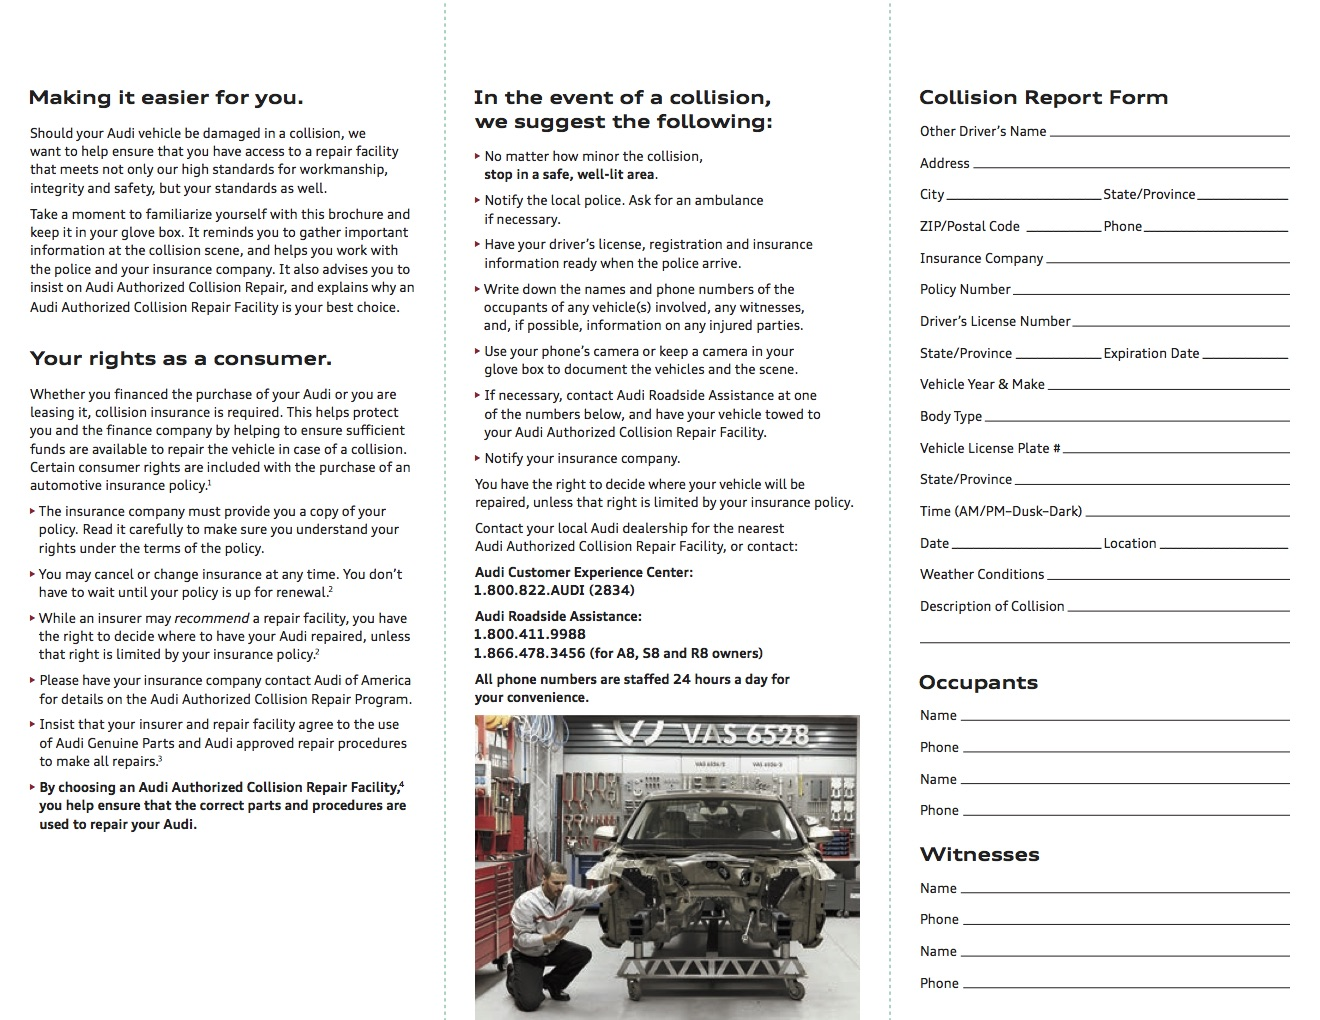 2017-Collision-Accident-Brochure-2